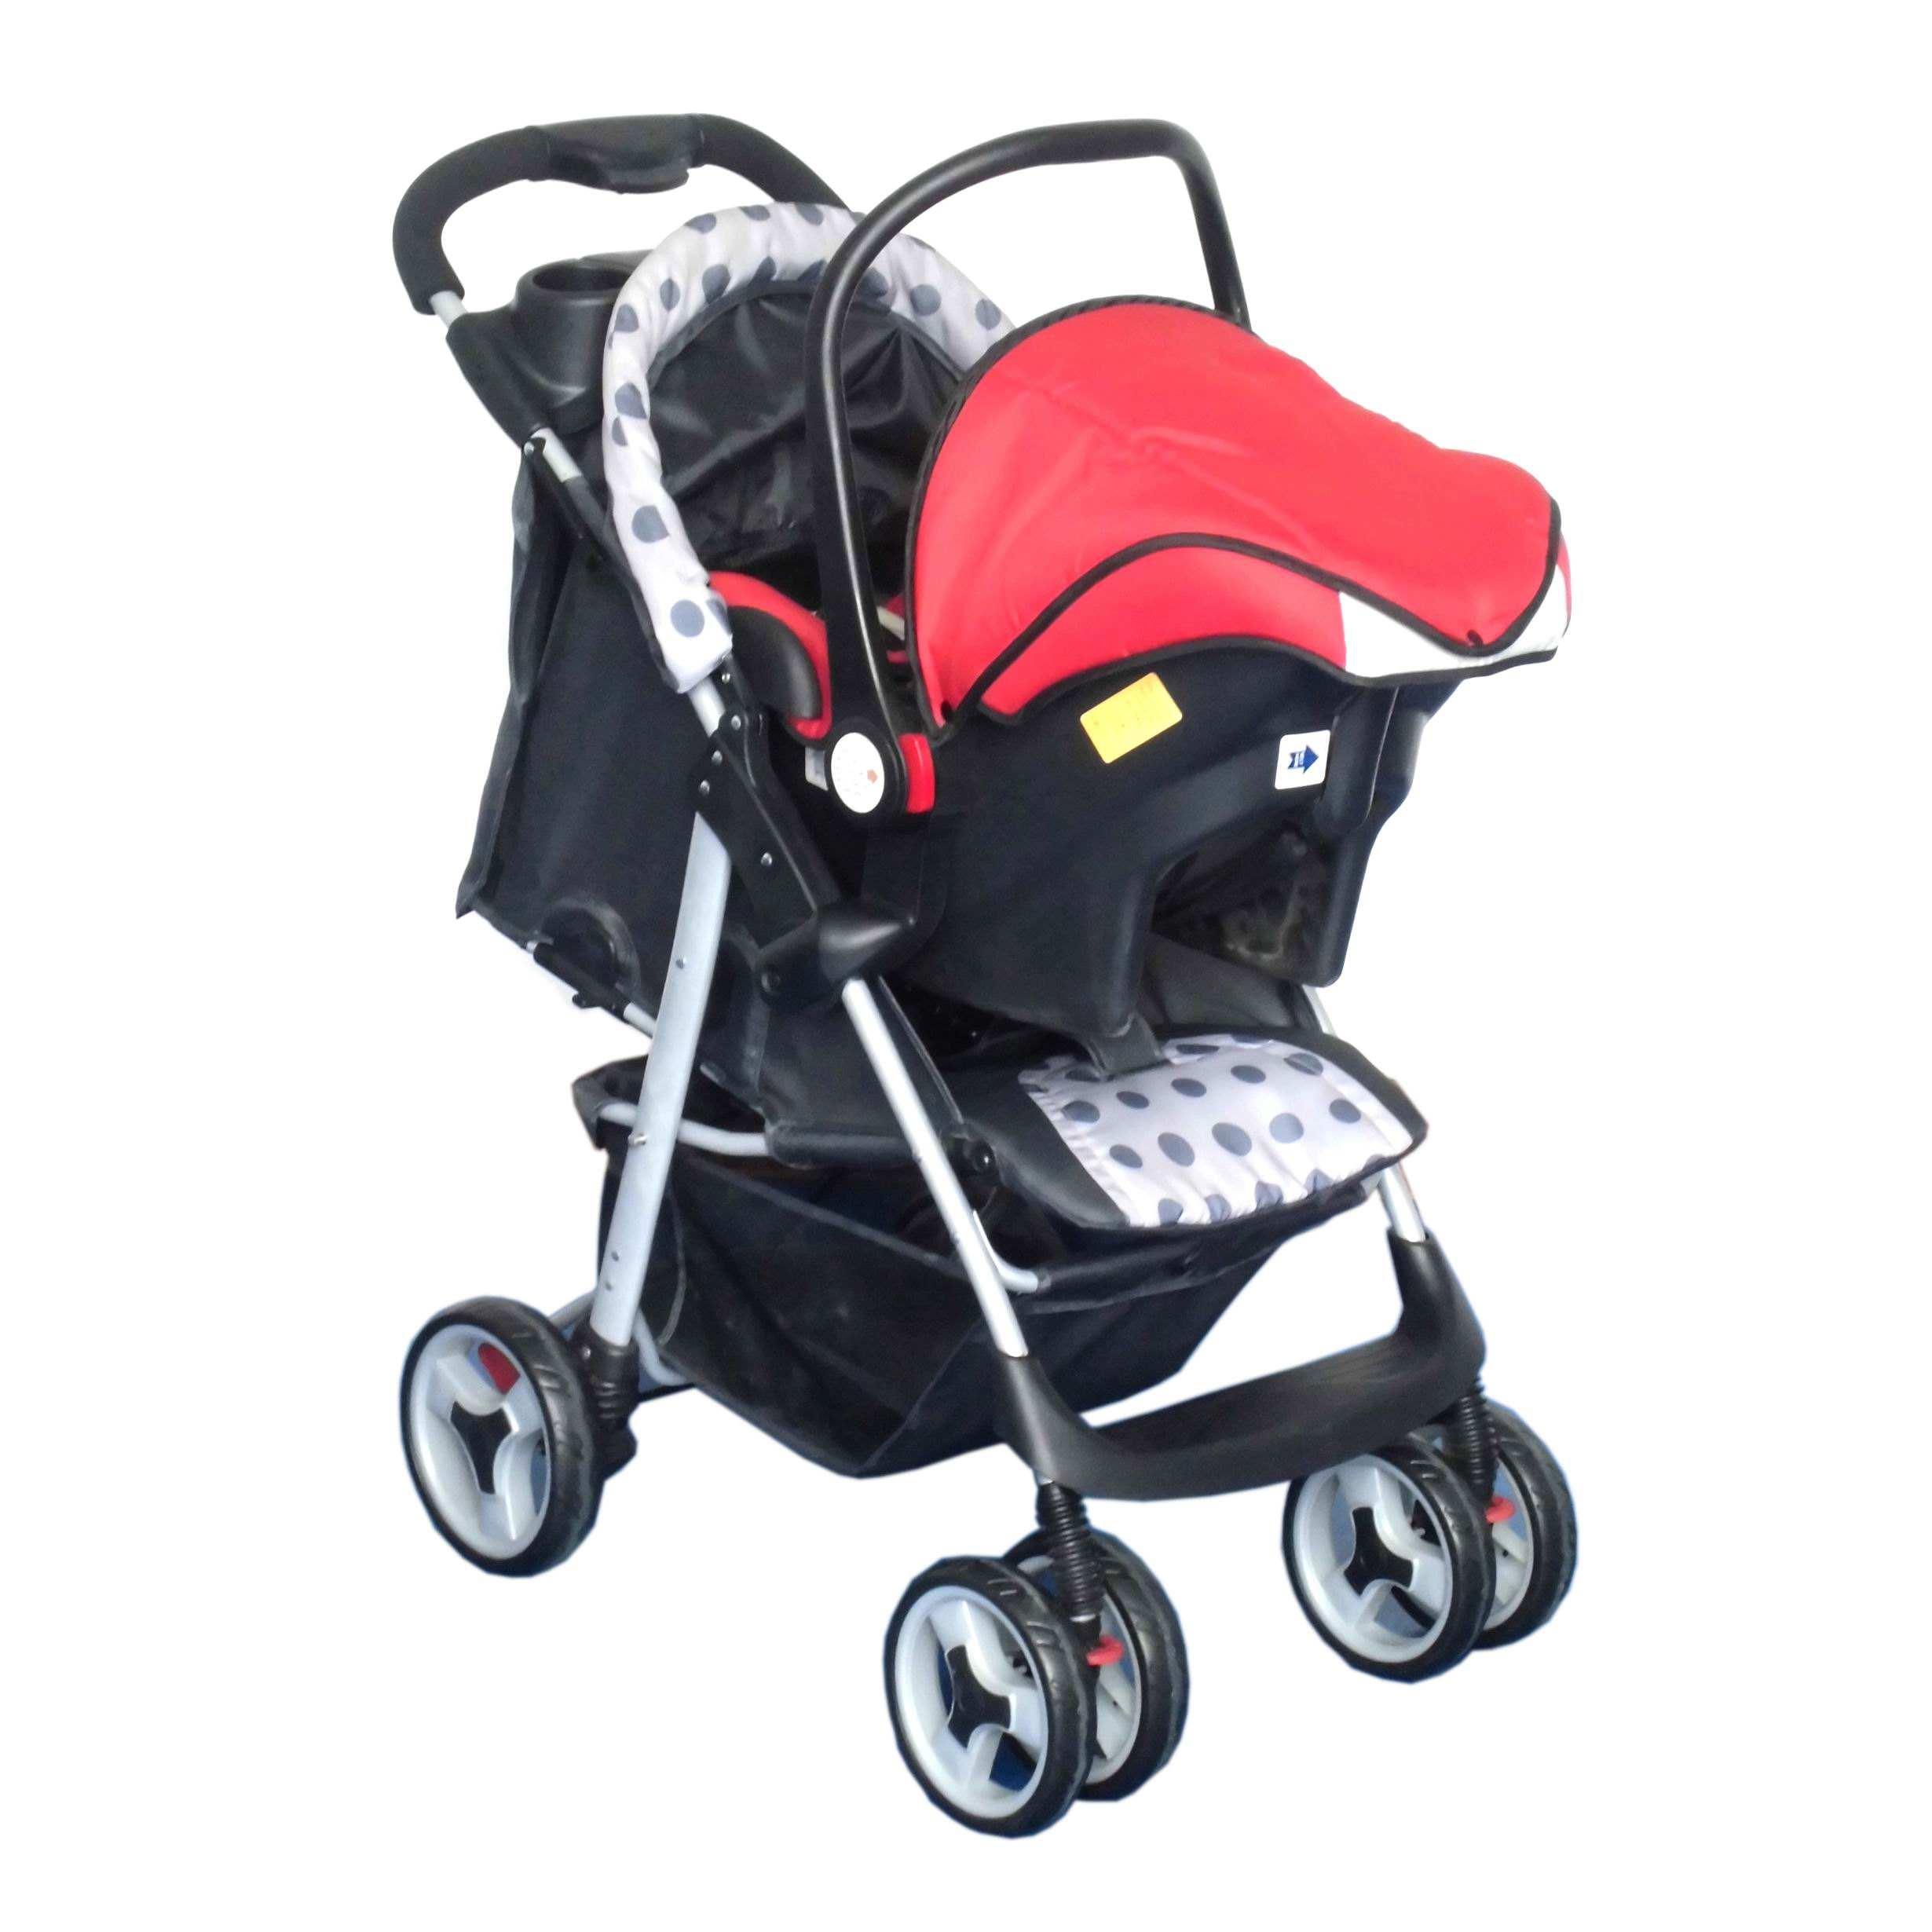 Convenience easy folding wholesale smooth riding style truly 3 in 1 travel system baby stroller